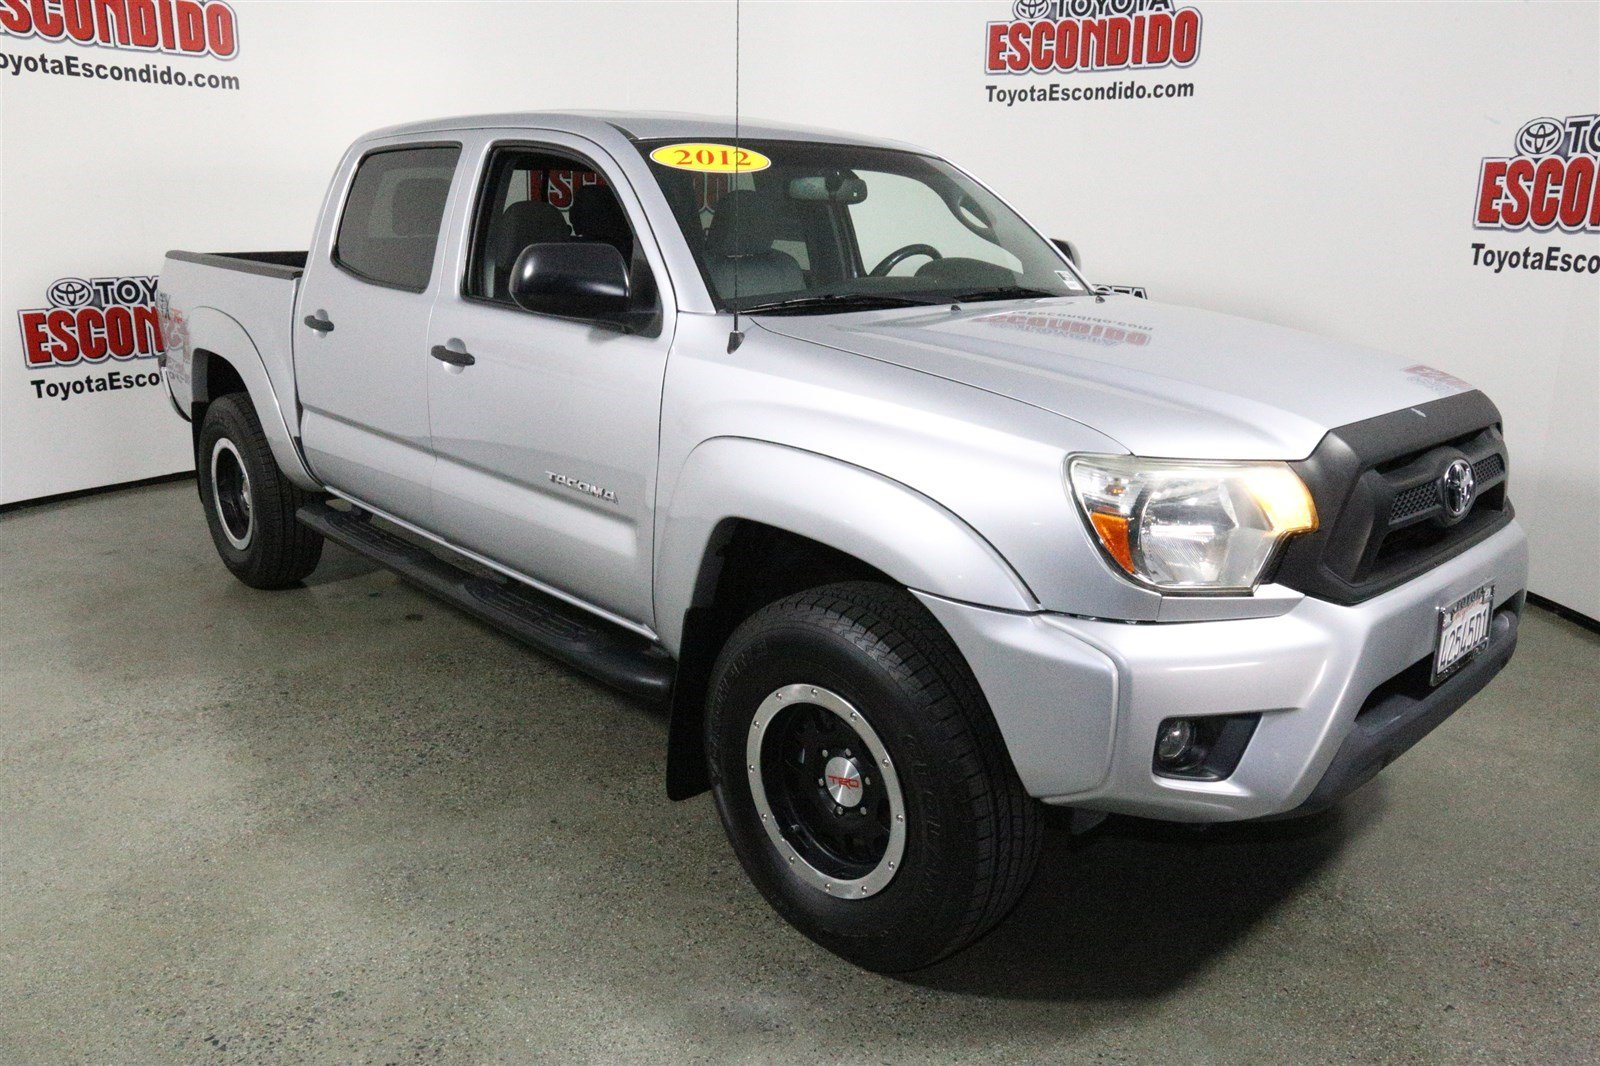 certified pre owned 2012 toyota tacoma prerunner double cab pickup in escondido 59479 toyota. Black Bedroom Furniture Sets. Home Design Ideas